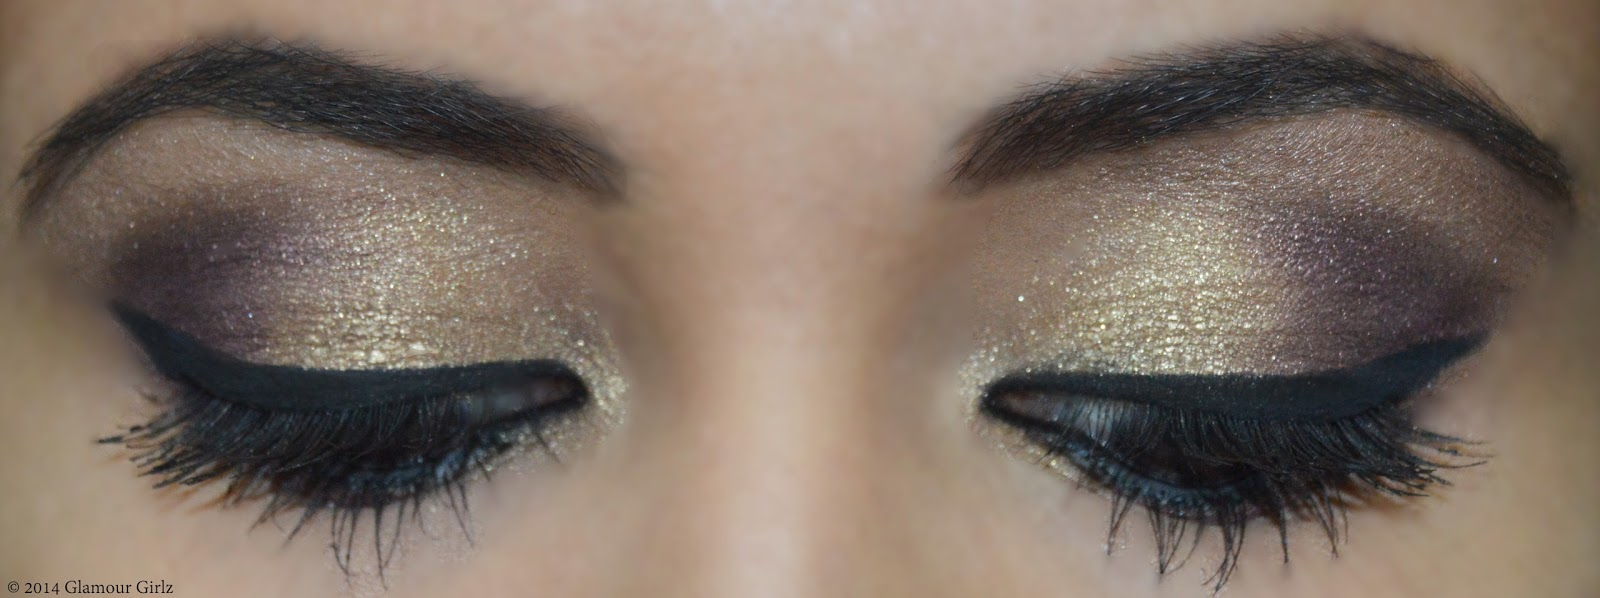 Bold and glamorous Eye makeup tutorial.